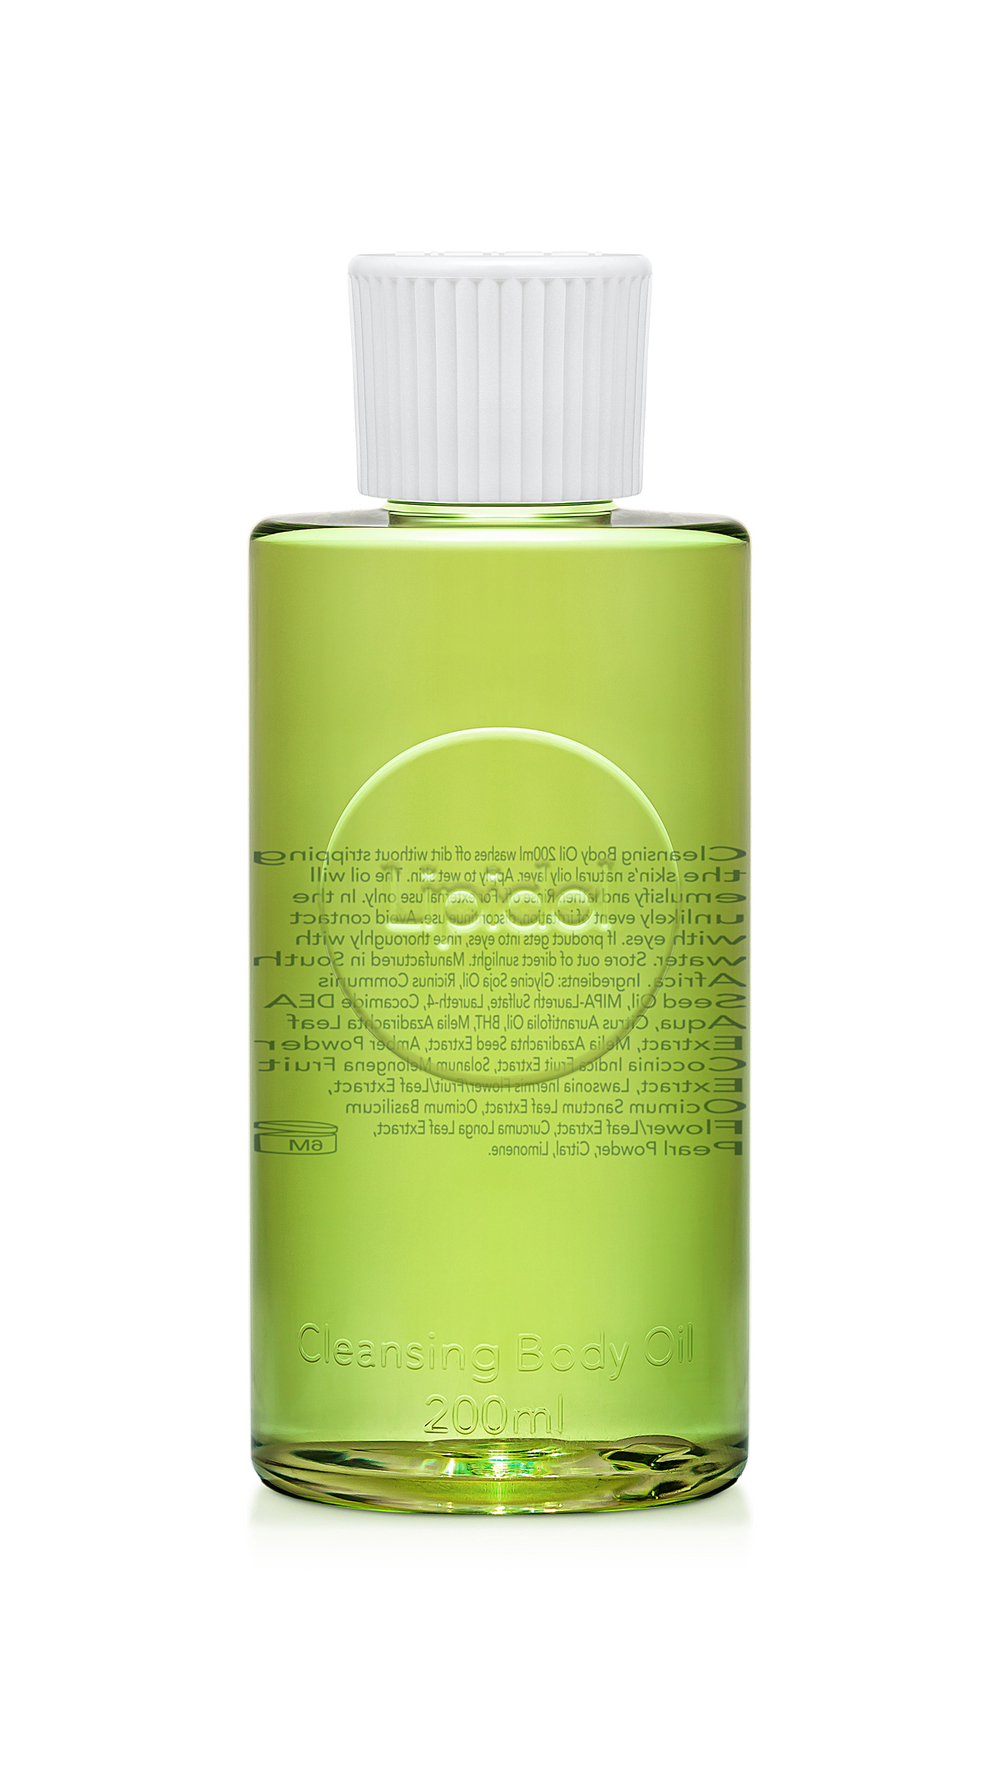 CLEANSING BODY OIL 200ml Washes off dirt without stripping the skin's natural oily layer. Apply to wet skin. The oil will emulsify and lather. Rinse off. Lime essential oil fragrance. Suitable for sensitive skin, non-acnegenic.